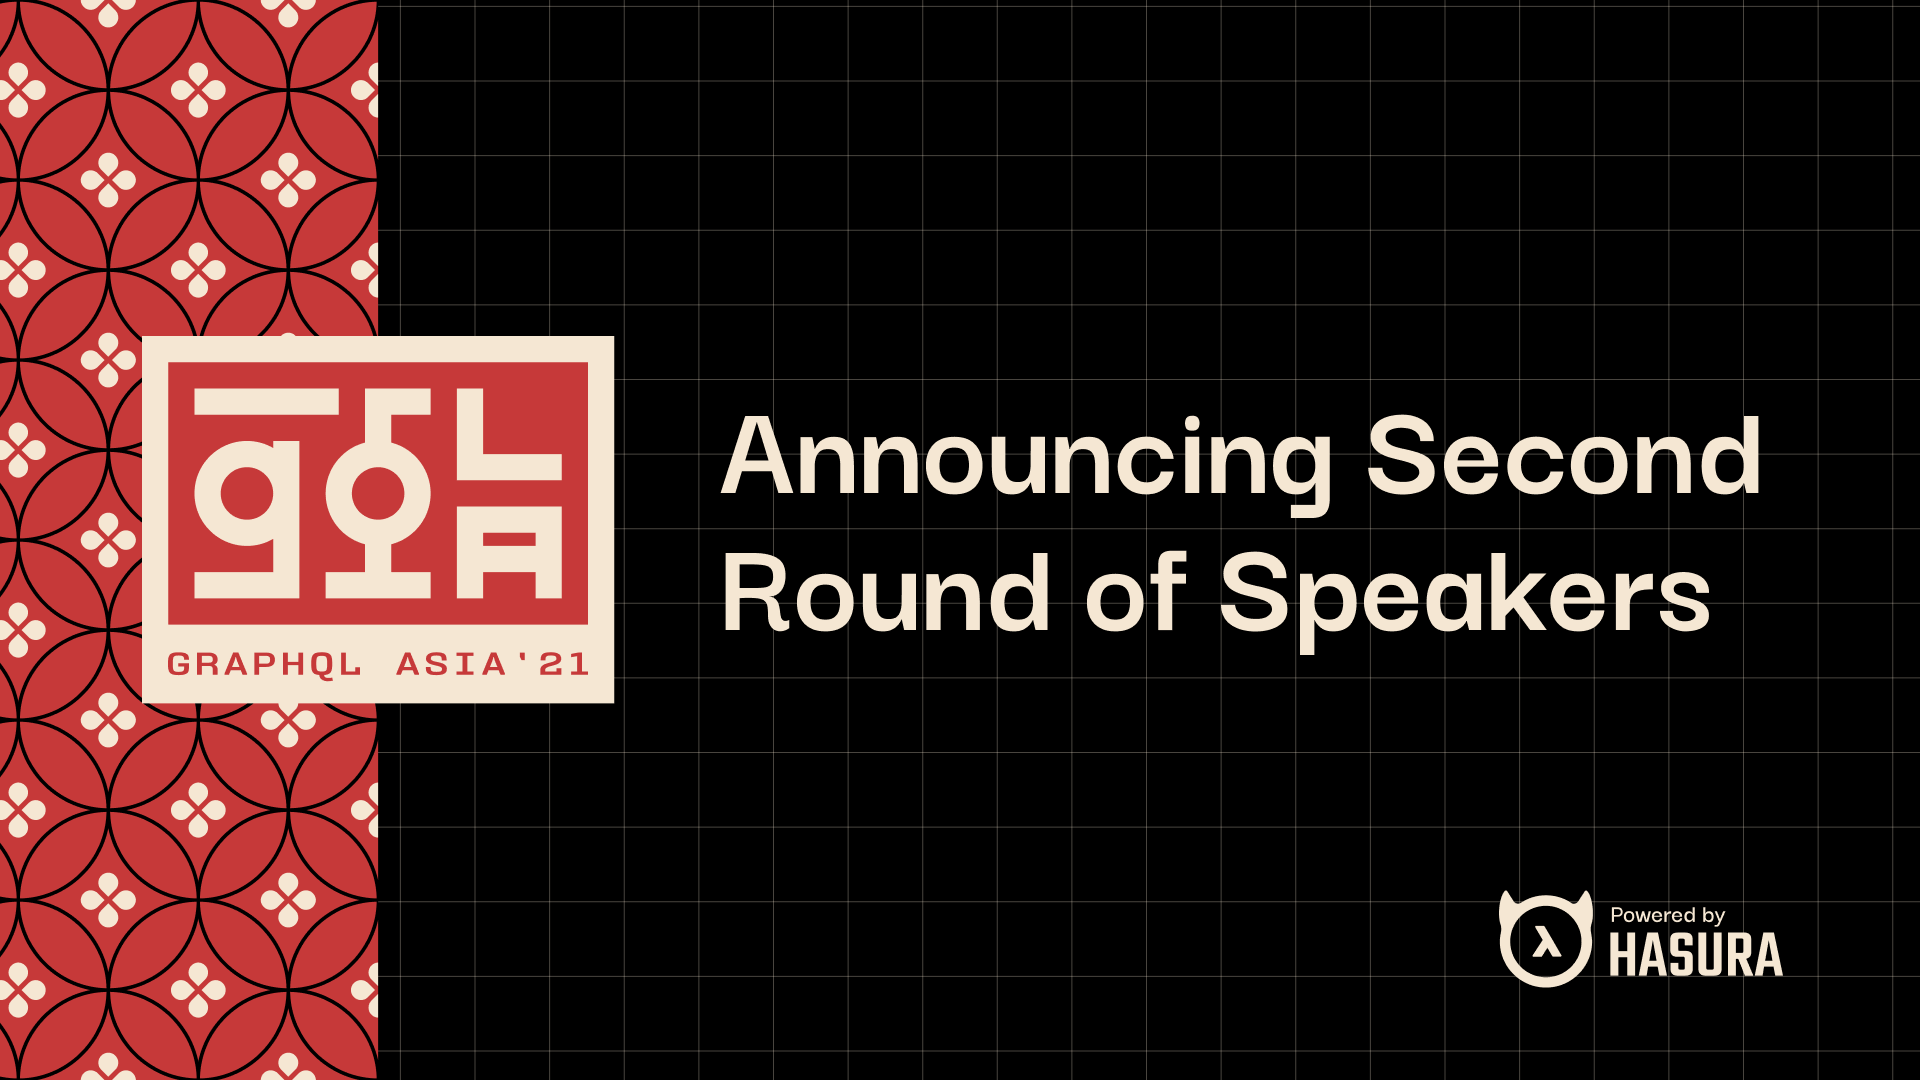 GraphQL Asia - Announcing Second Round of Speakers